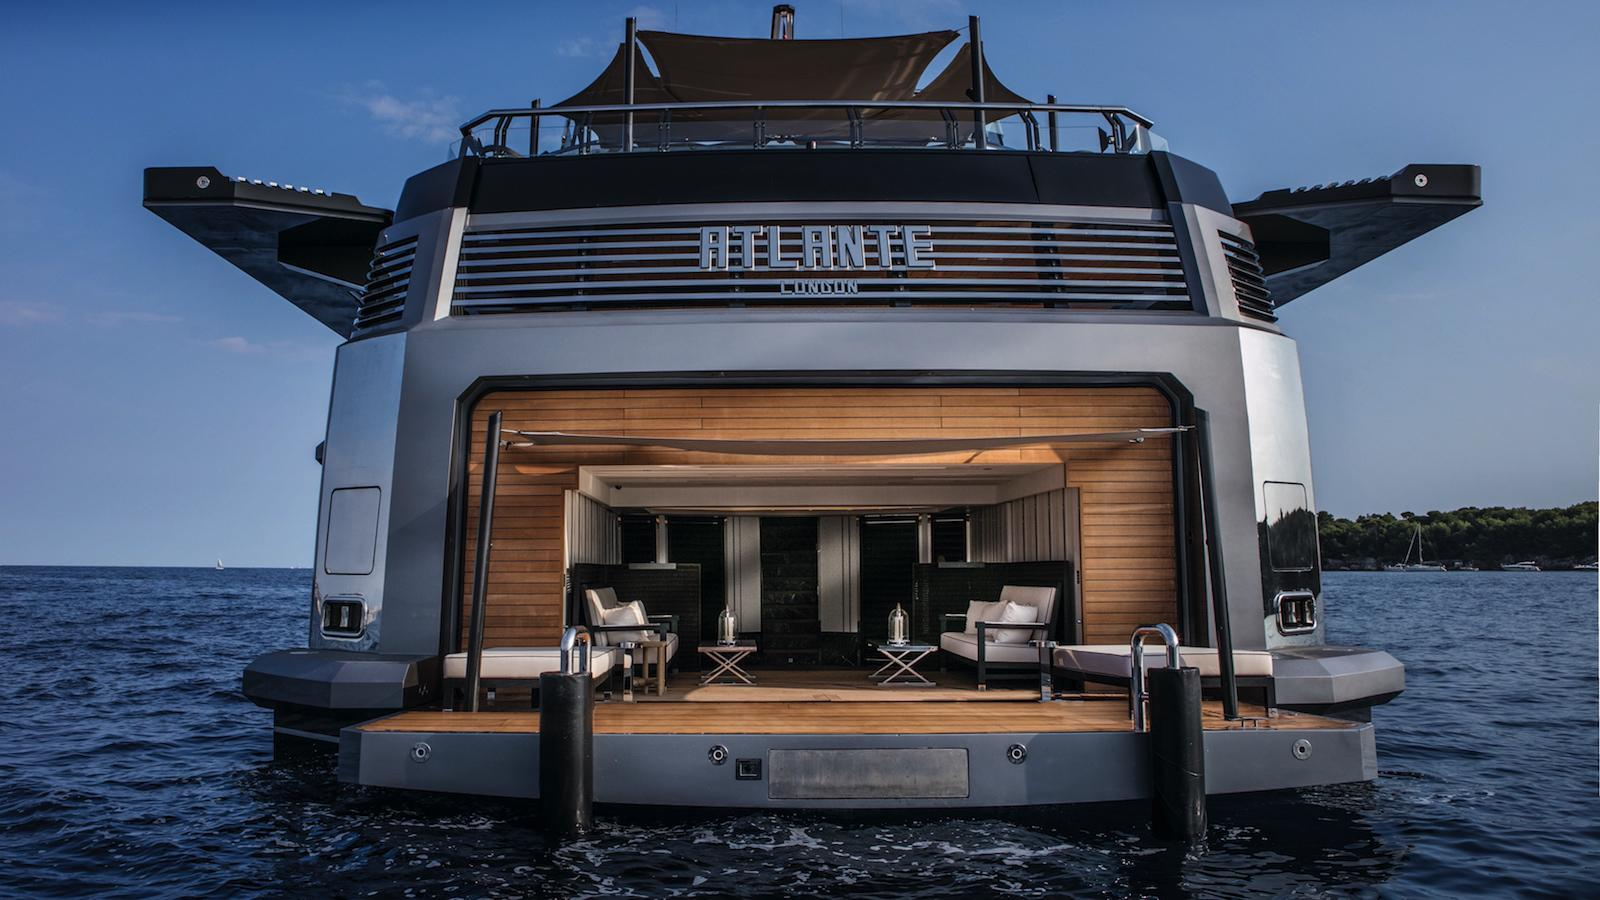 Atlante-motor-yacht-crn-2015-55m-beach-club